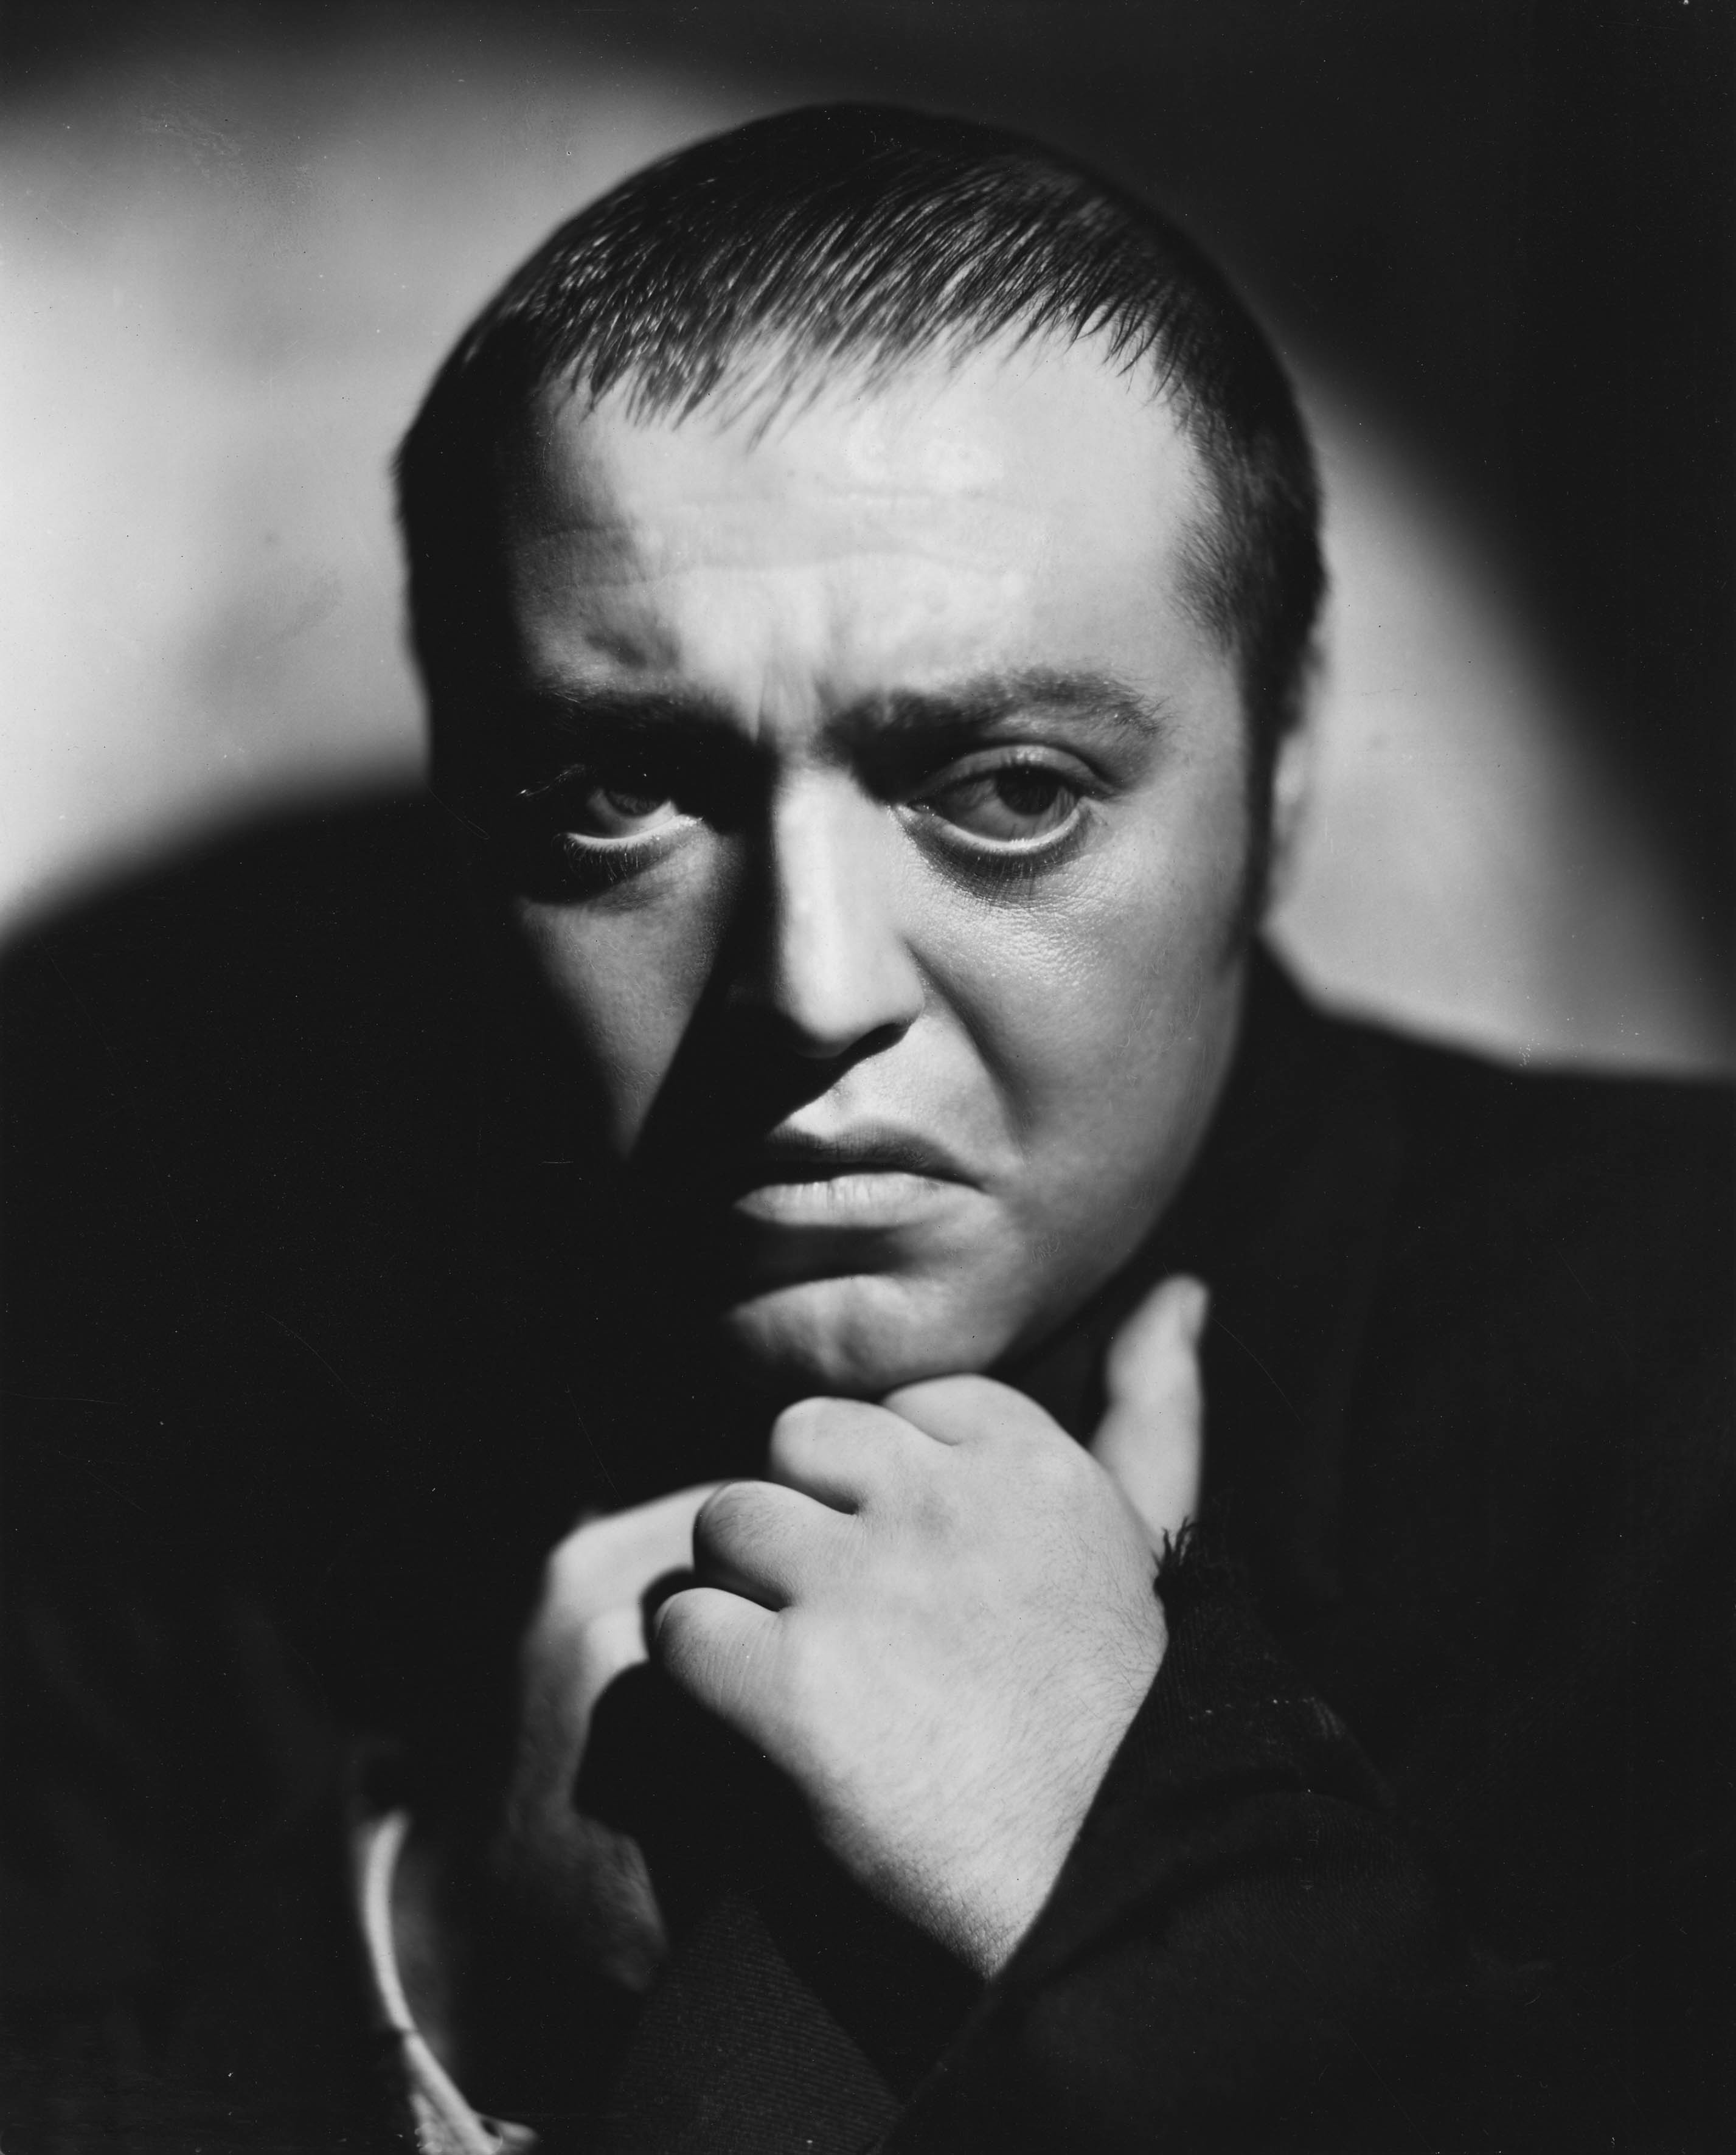 """CRIME AND PUNISHMENT"" PETER LORRE 1935 PHOTO:IRVING LIPPMAN/22578-0001/HA-LFI RESTRICTED NO USA,GERMANY OR JAPAN"